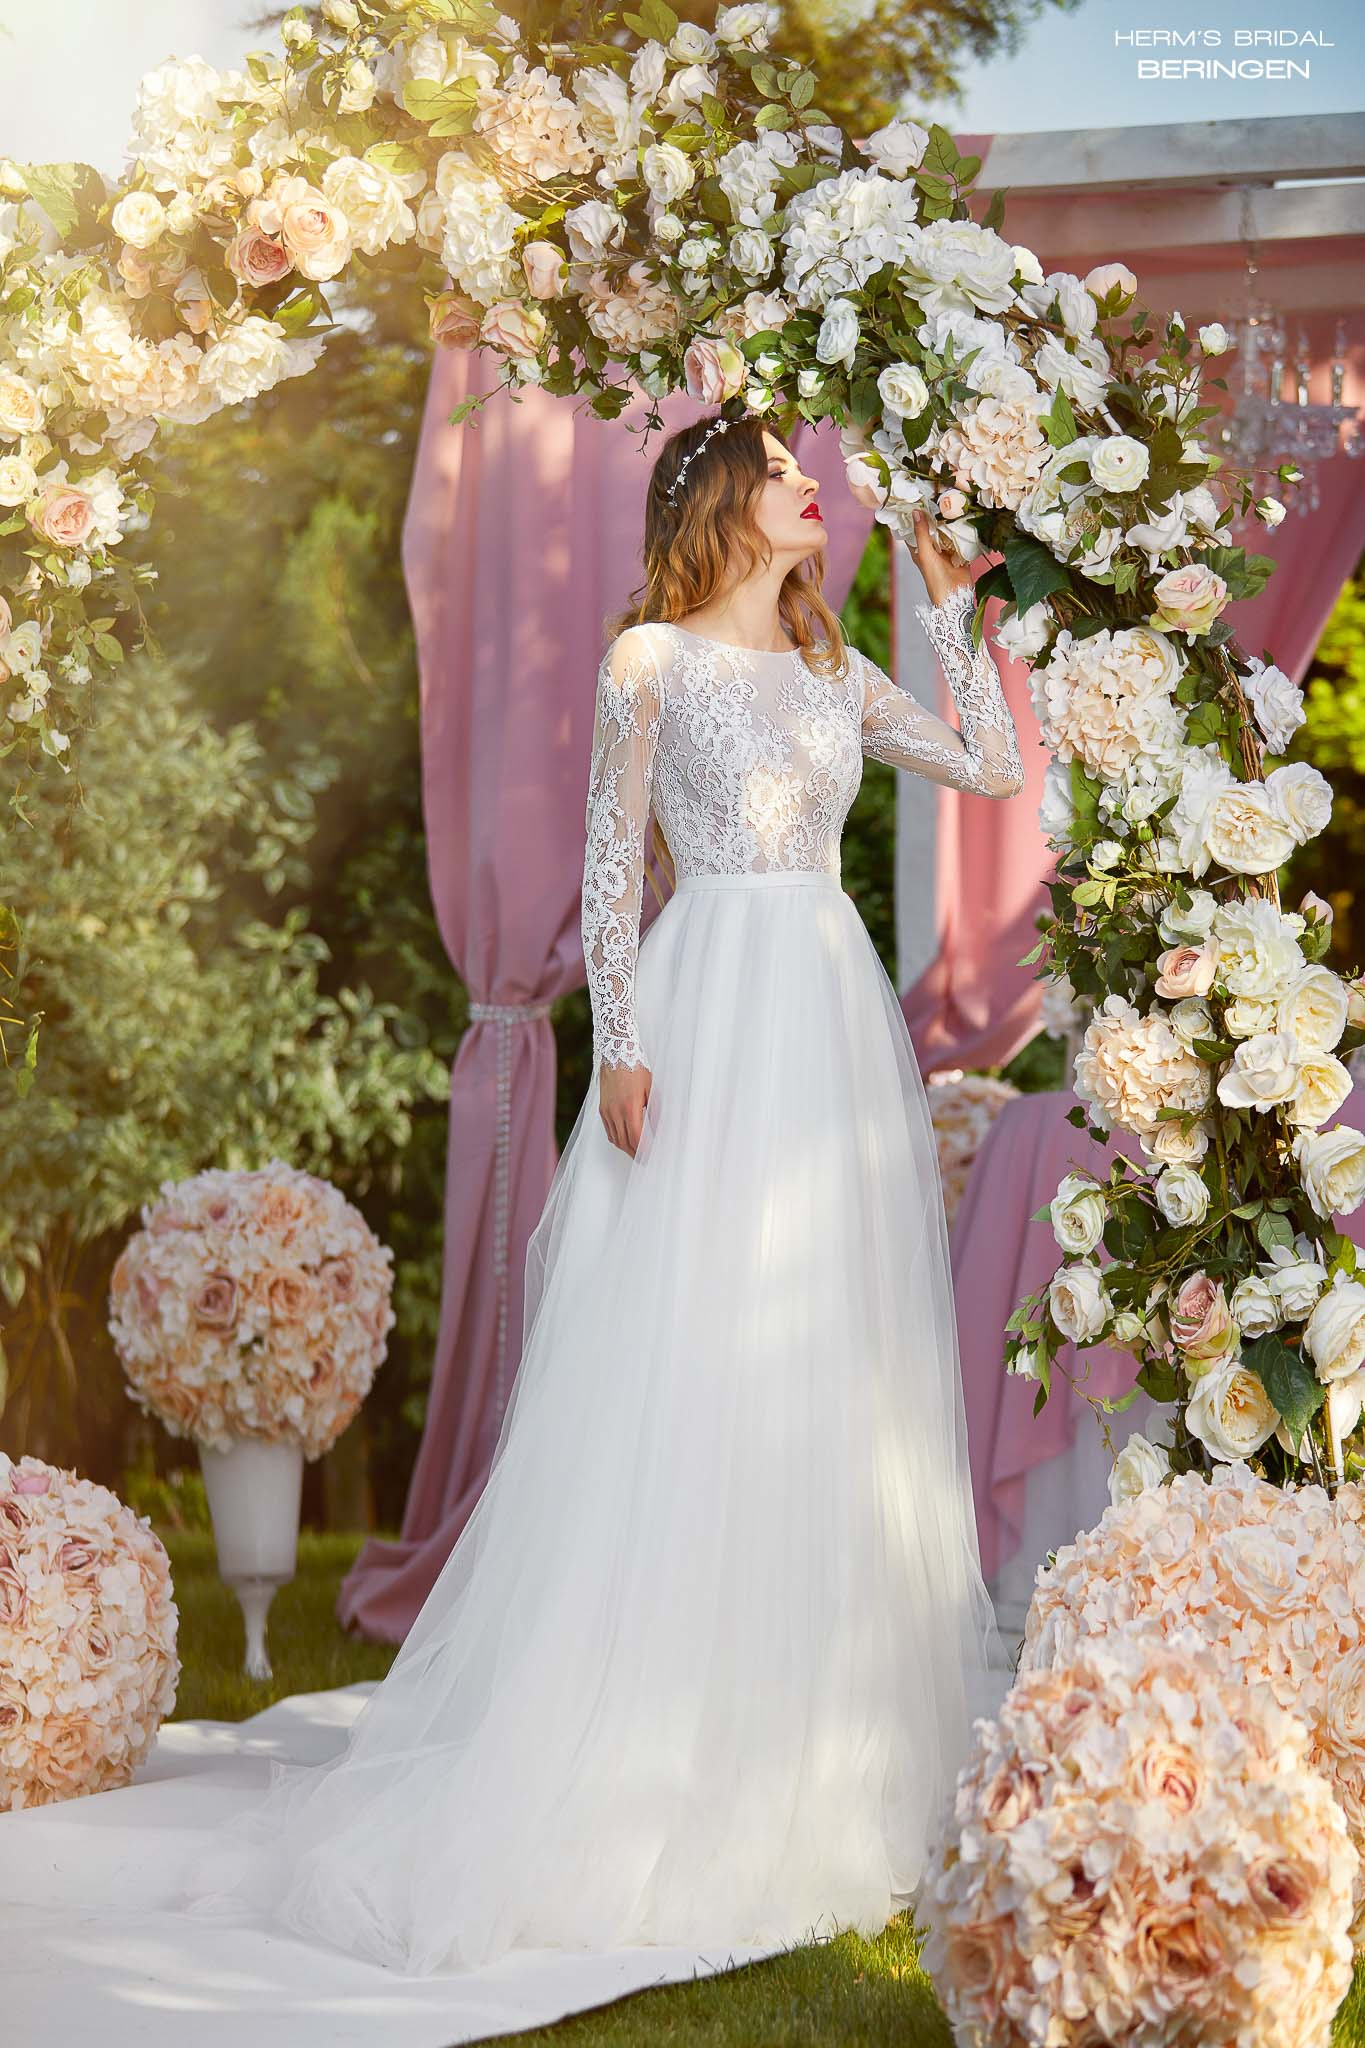 wedding dress Herm's Bridal Beringen